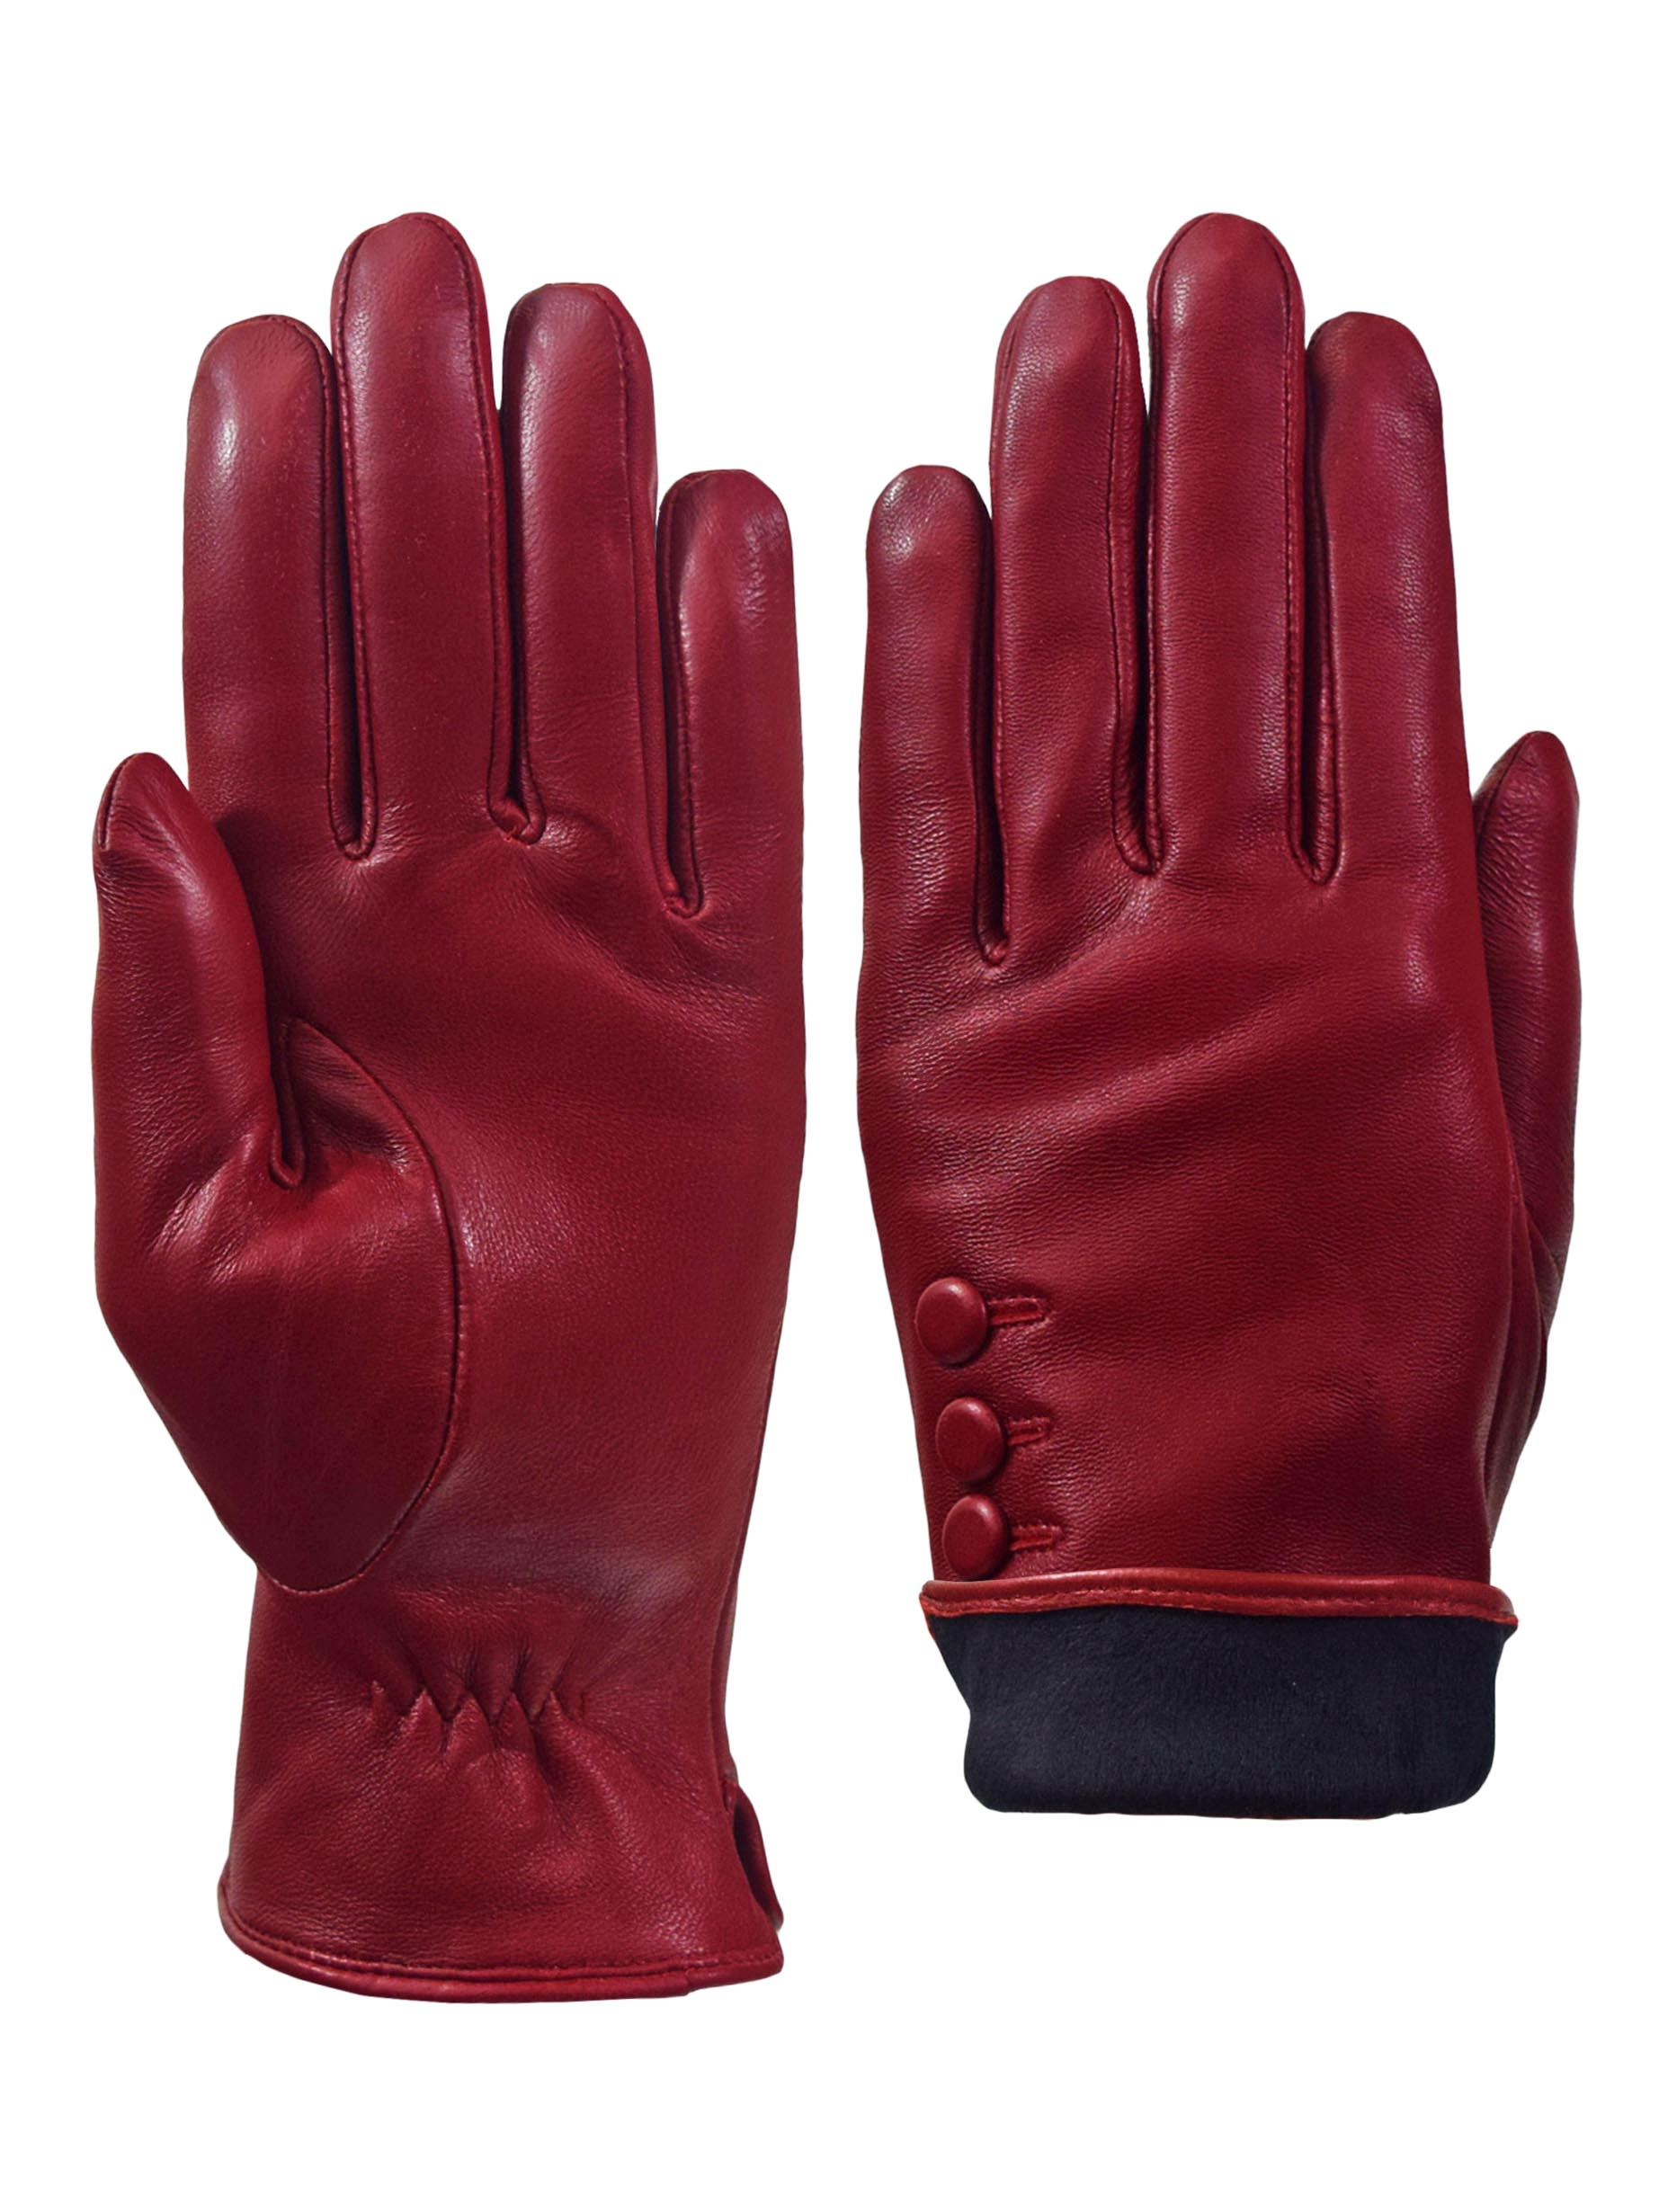 Giromy-Samoni-Womens-Warm-Winter-Plush-Lined-Leather-Driving-Gloves-Red thumbnail 6